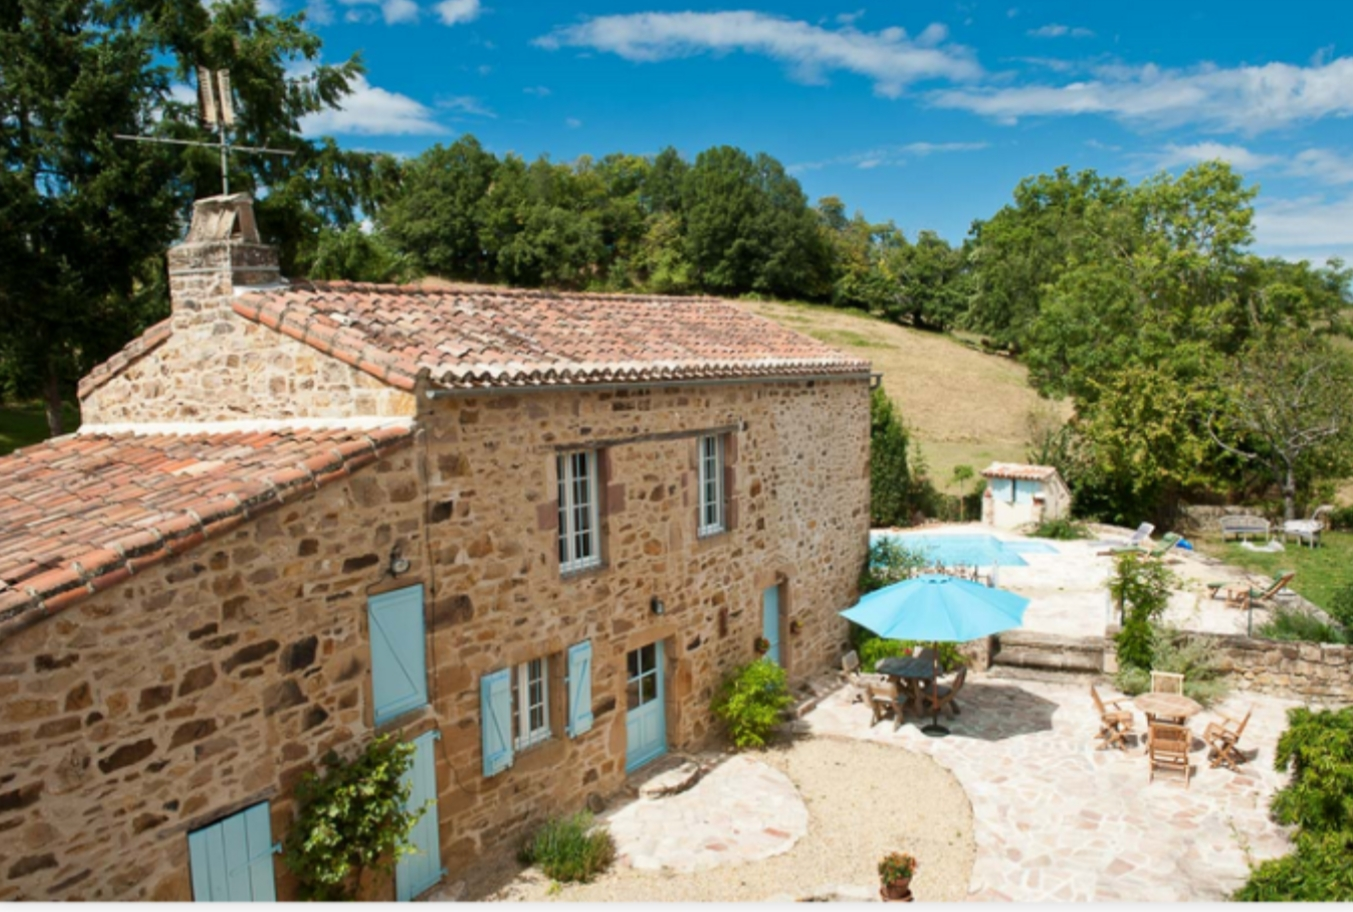 Heavenly Najac, Rent a house in France